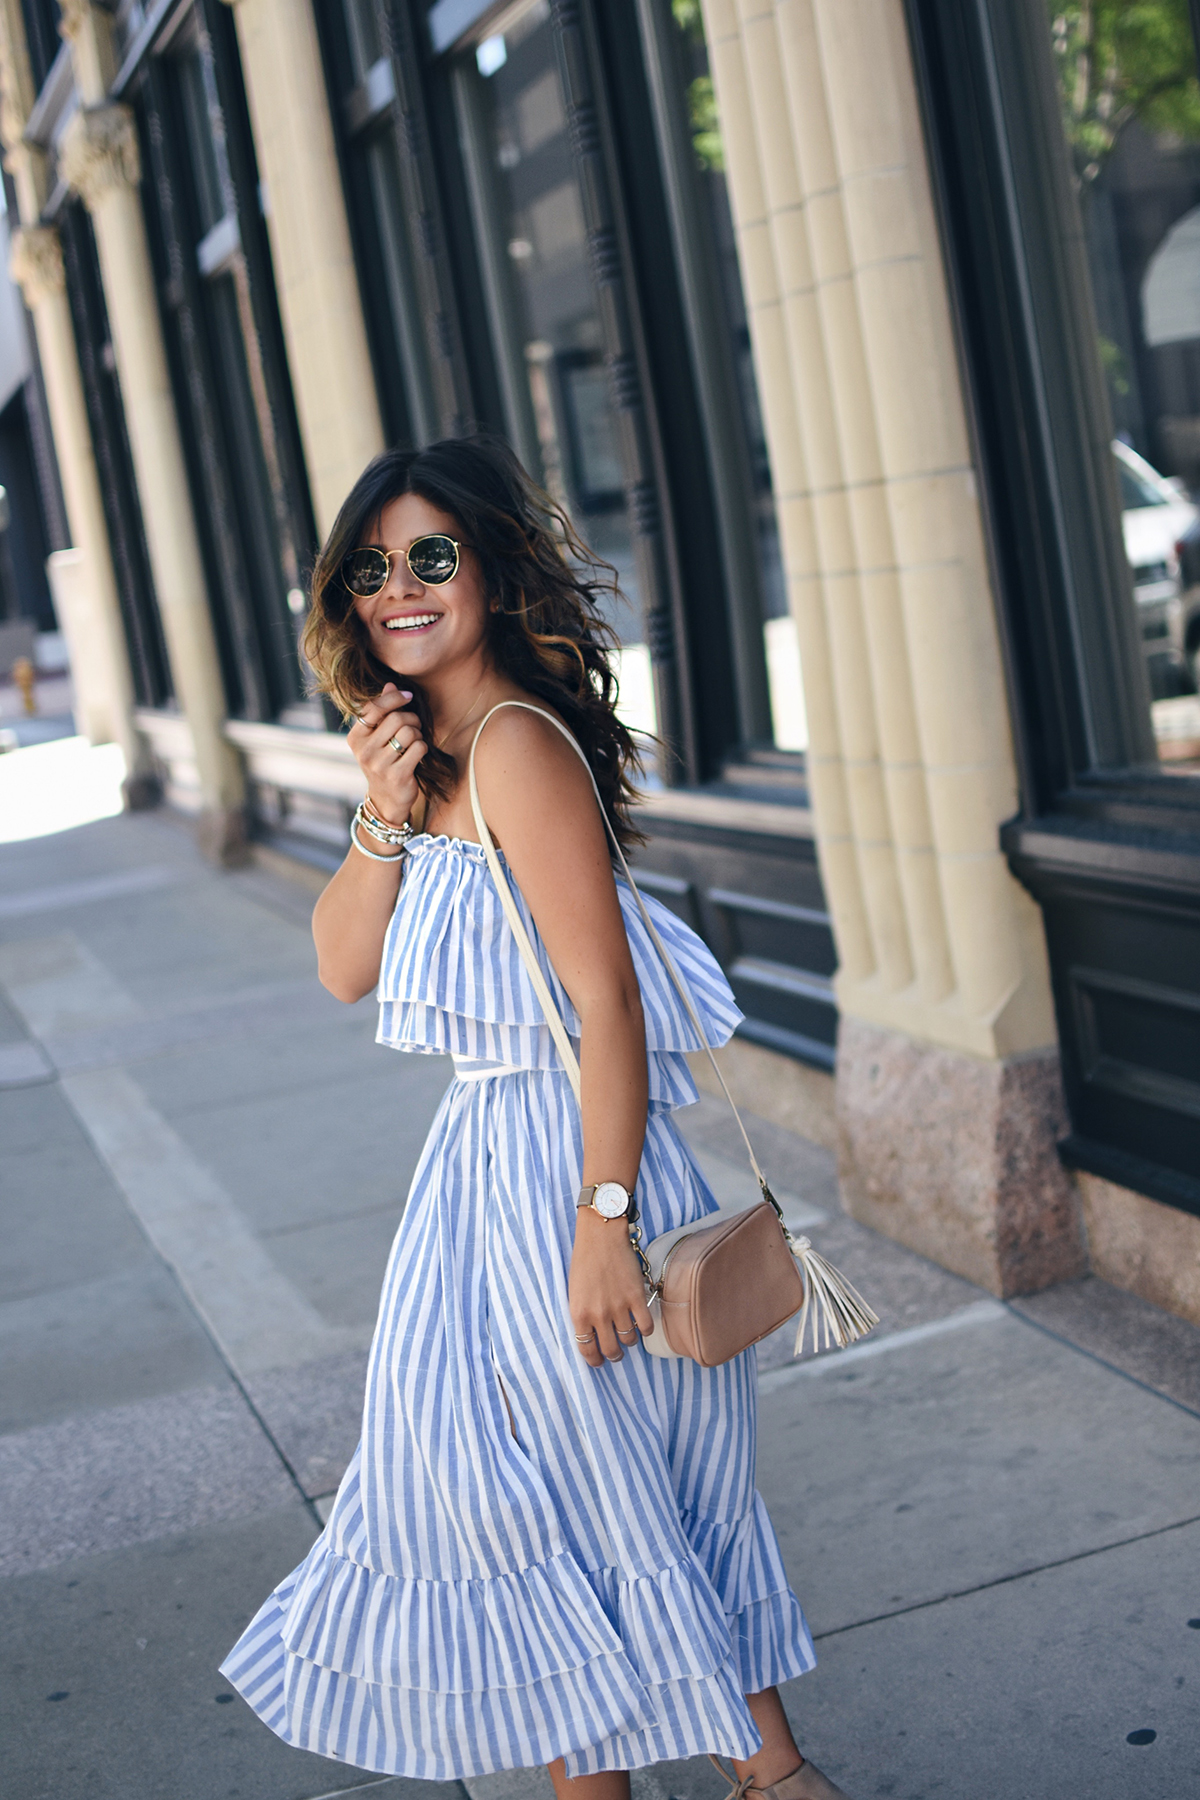 WHY 2-PIECE SETS ARE THE BEST SUMMER OUTFITS